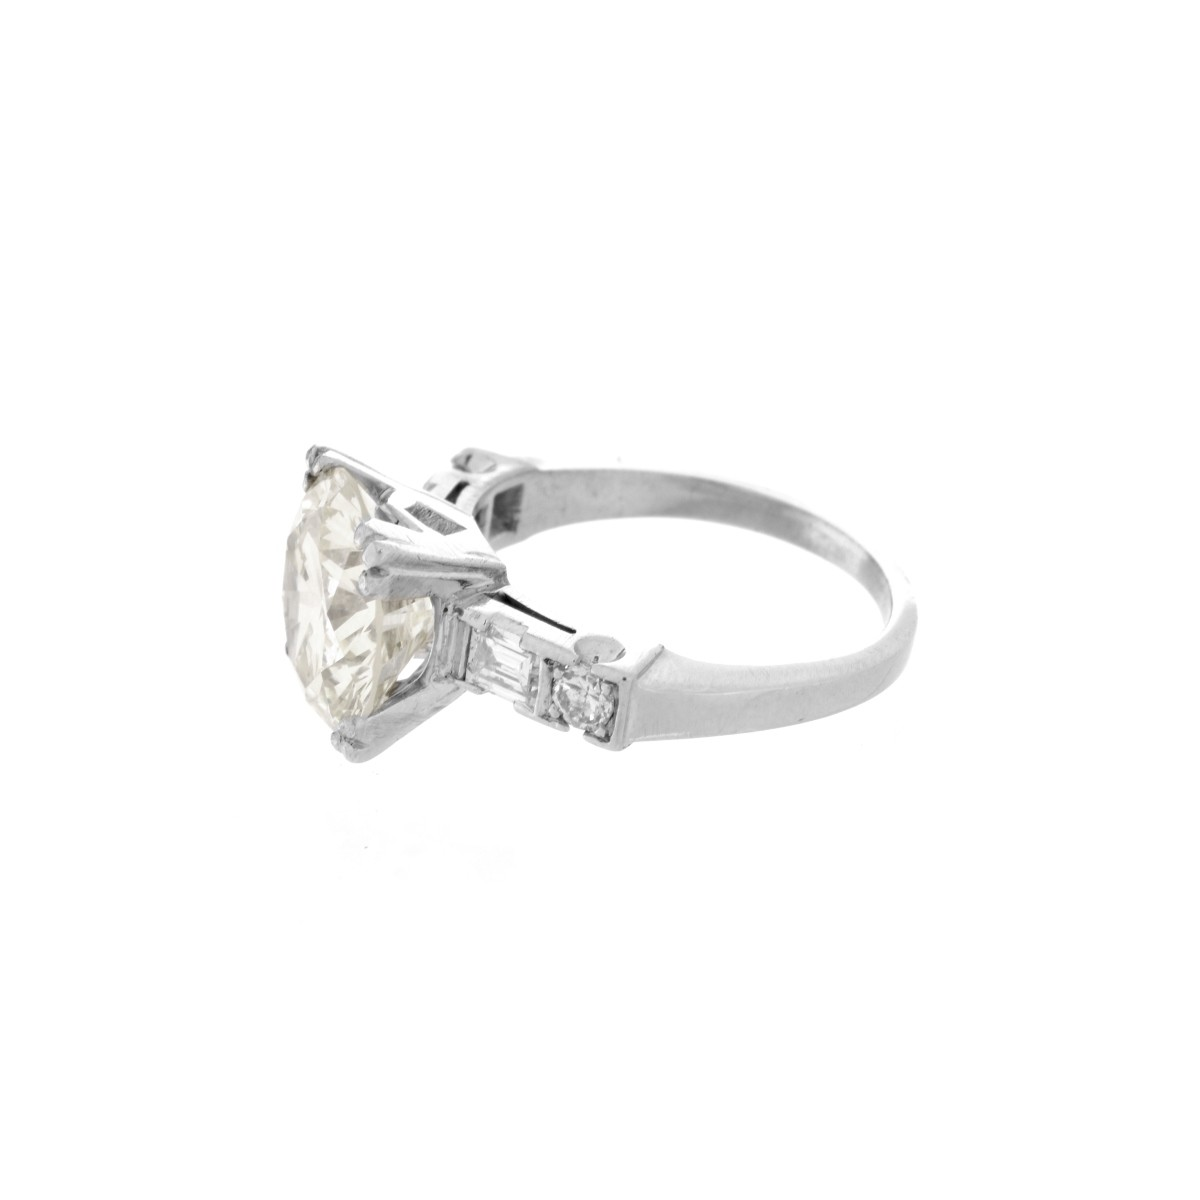 4.38 Carat Diamond and Platinum Ring